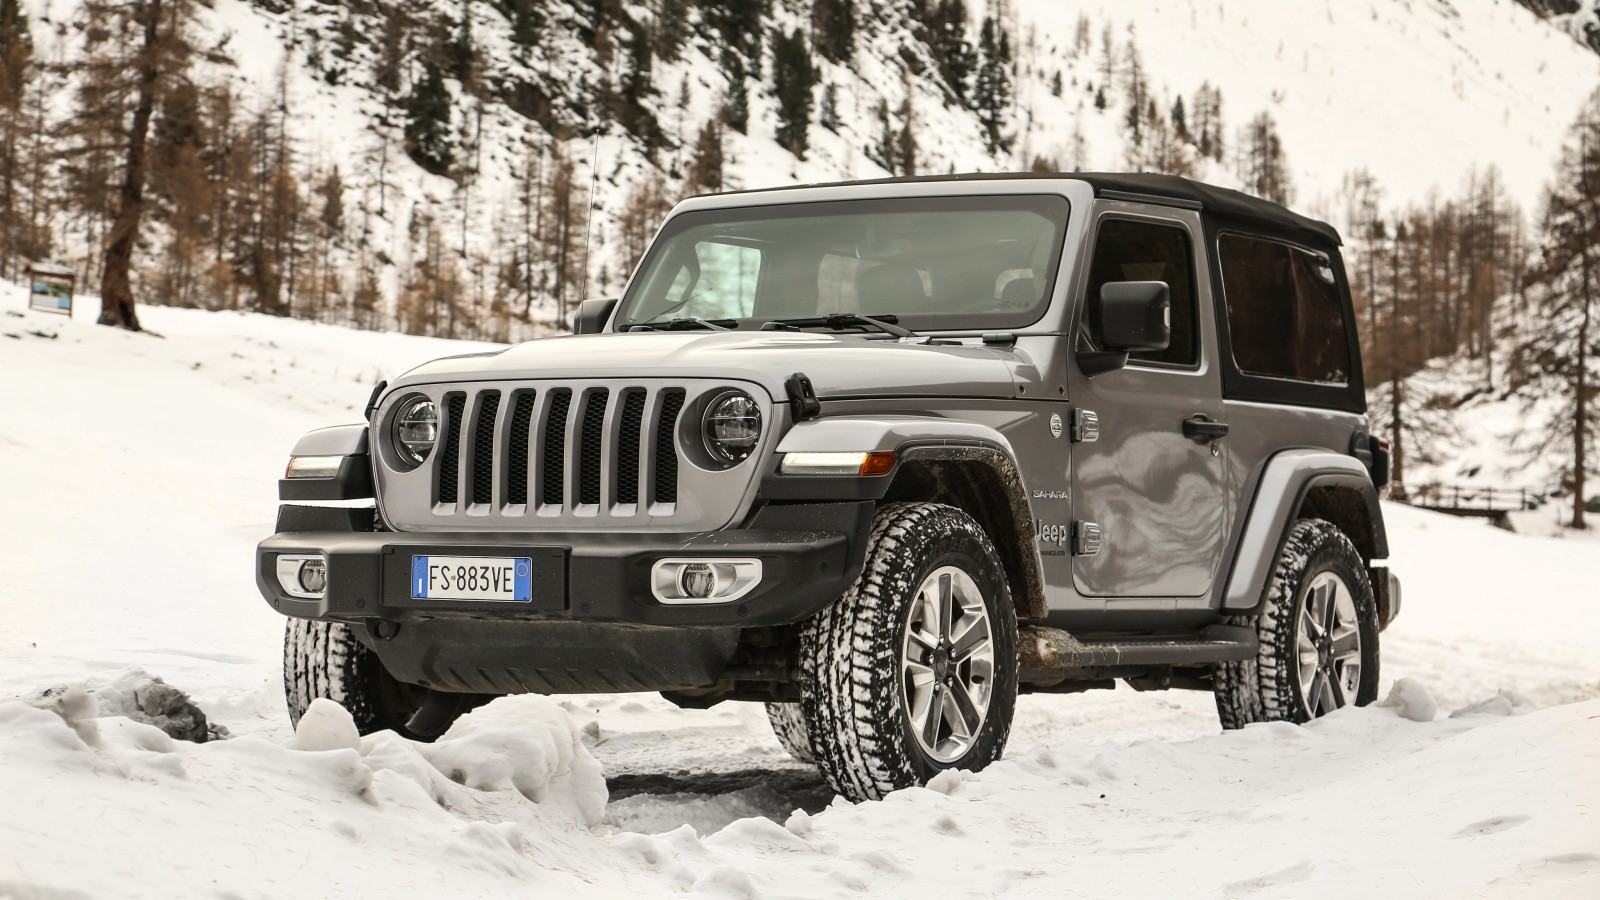 Jeep Wrangler Sahara 2019 4K Wallpaper | HD Car Wallpapers ...